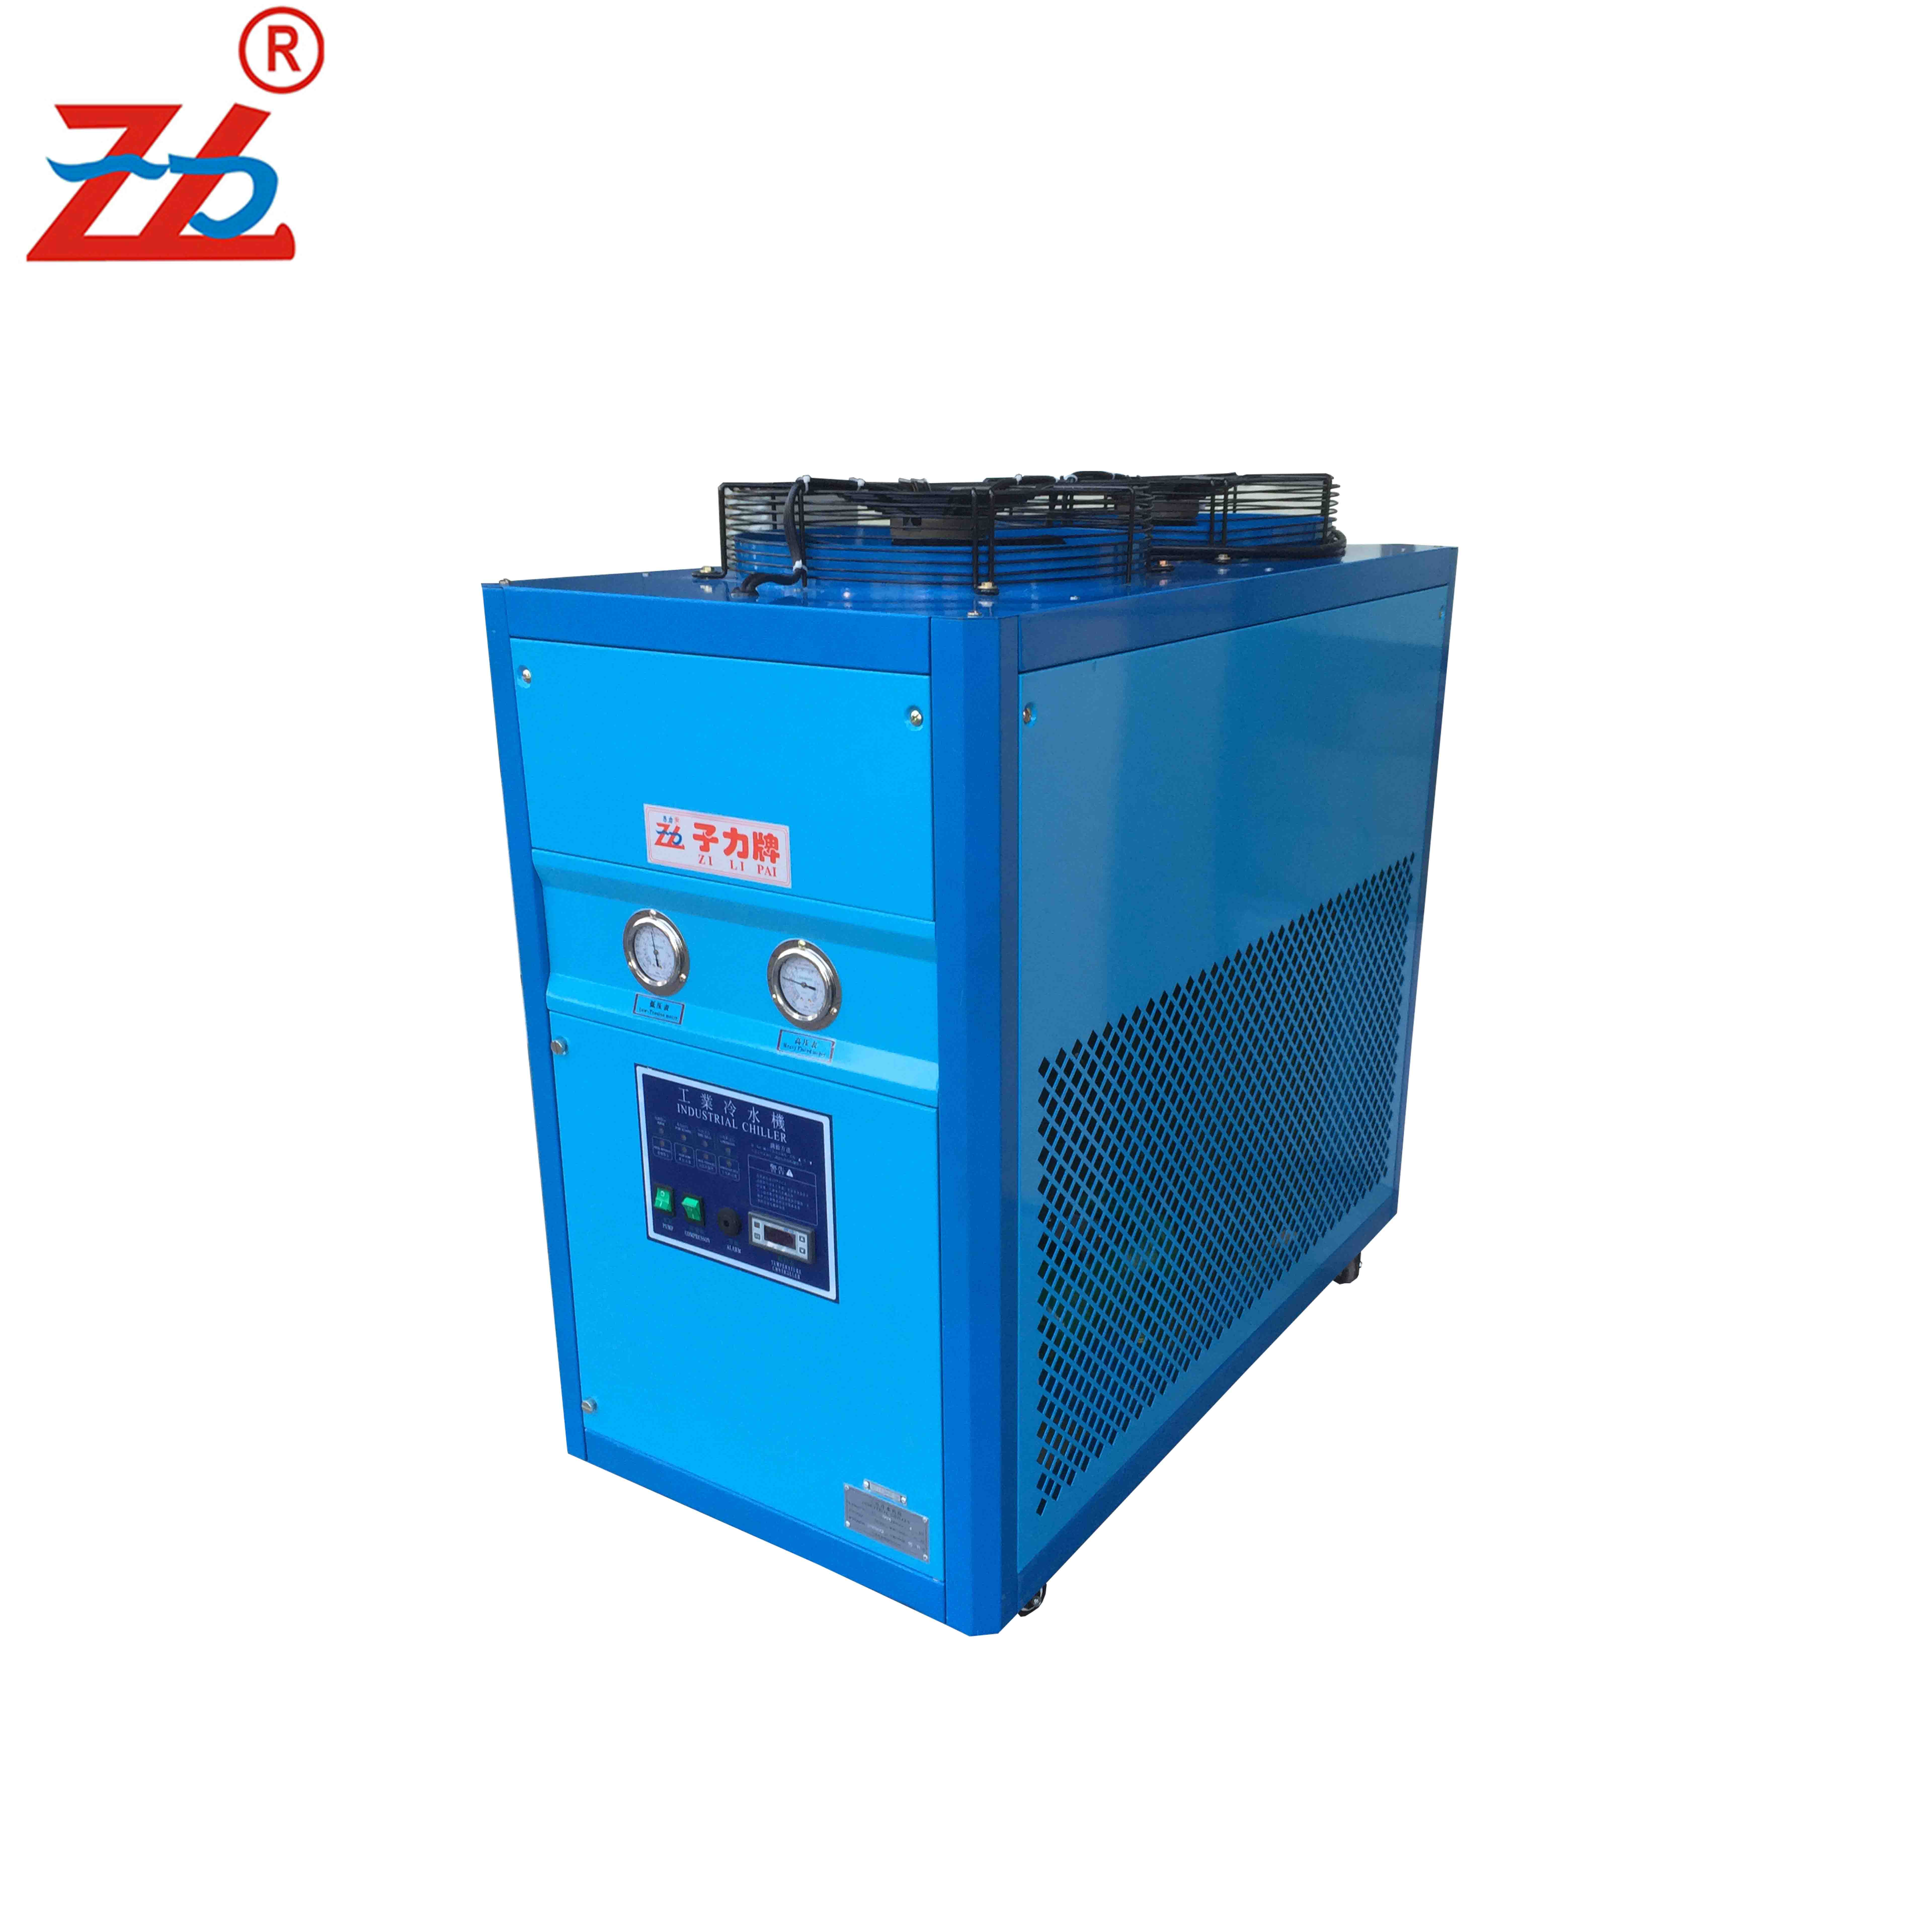 Ontelbaar 8HP Air chiller luchtgekoelde water chiller voor industrie chiler waterkoeling machine tafel top mini vriezer